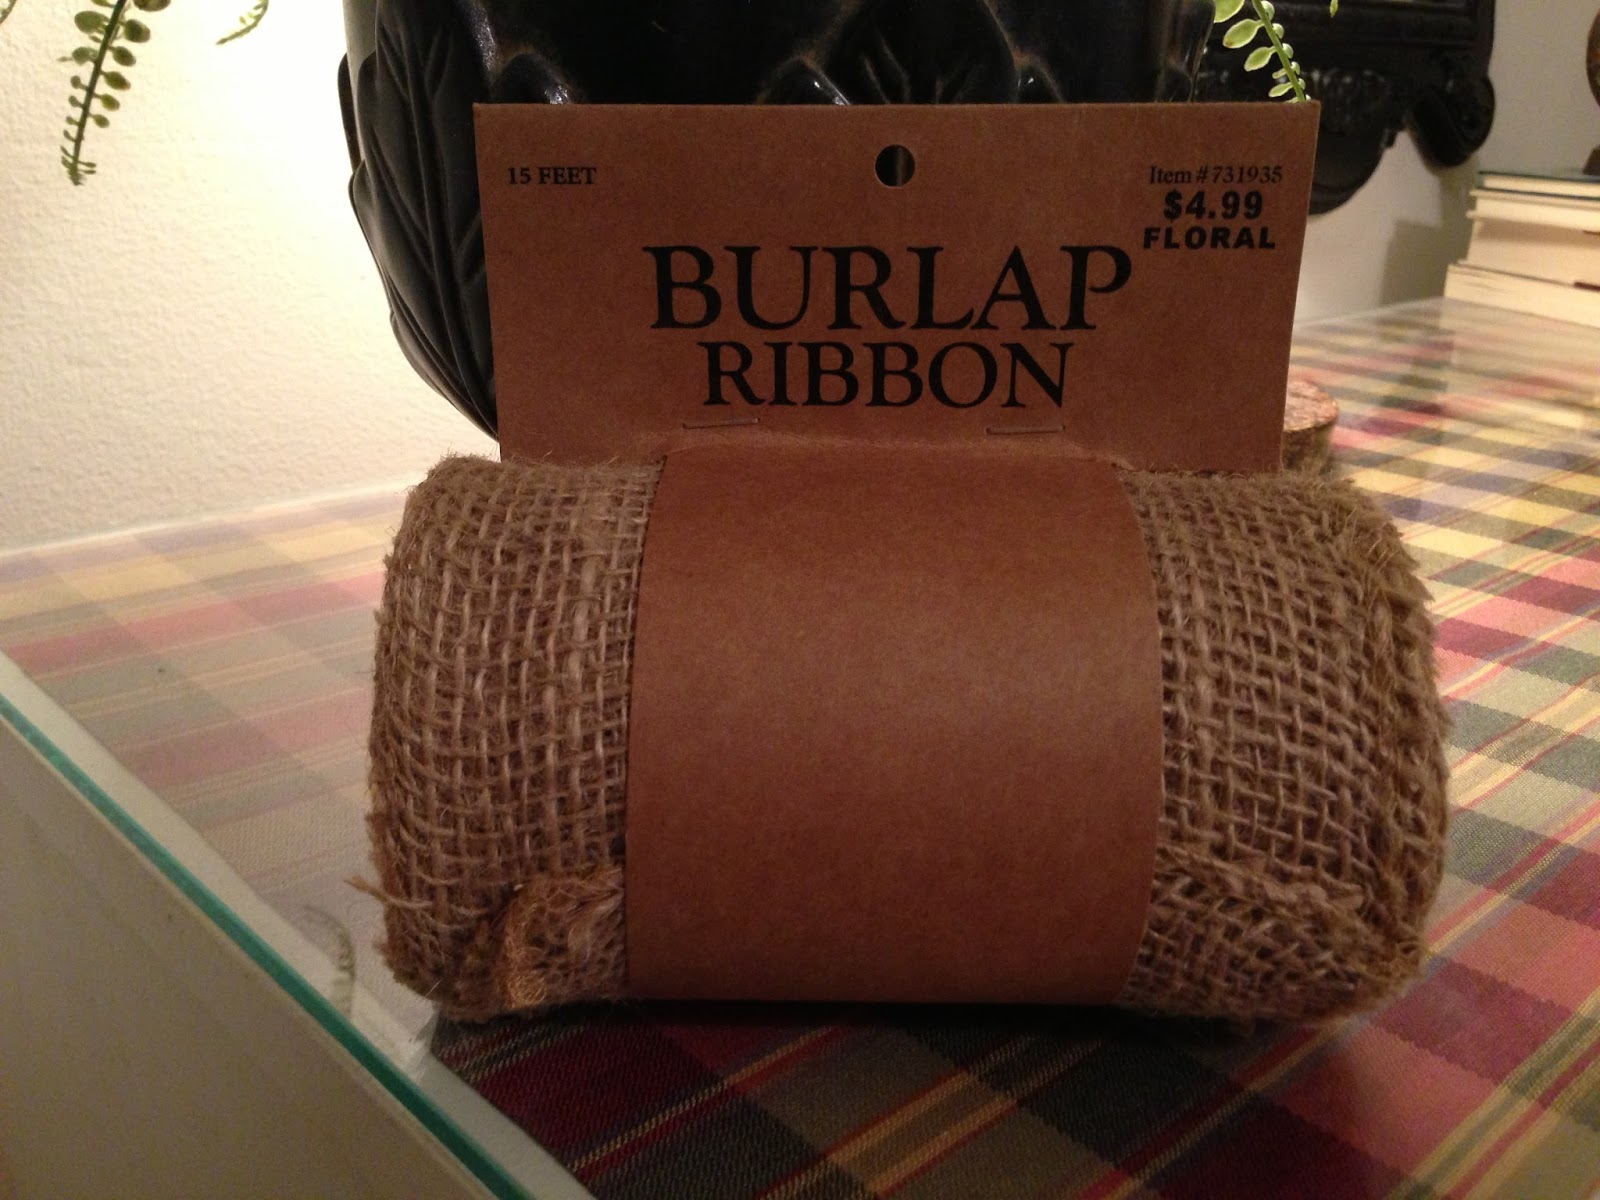 i used 5 rolls of non wire burlap i got from hobby lobby the wire wreath frame i used was 18 inches wide dont forget to check hobby lobbys - Wire Wreath Frame Hobby Lobby